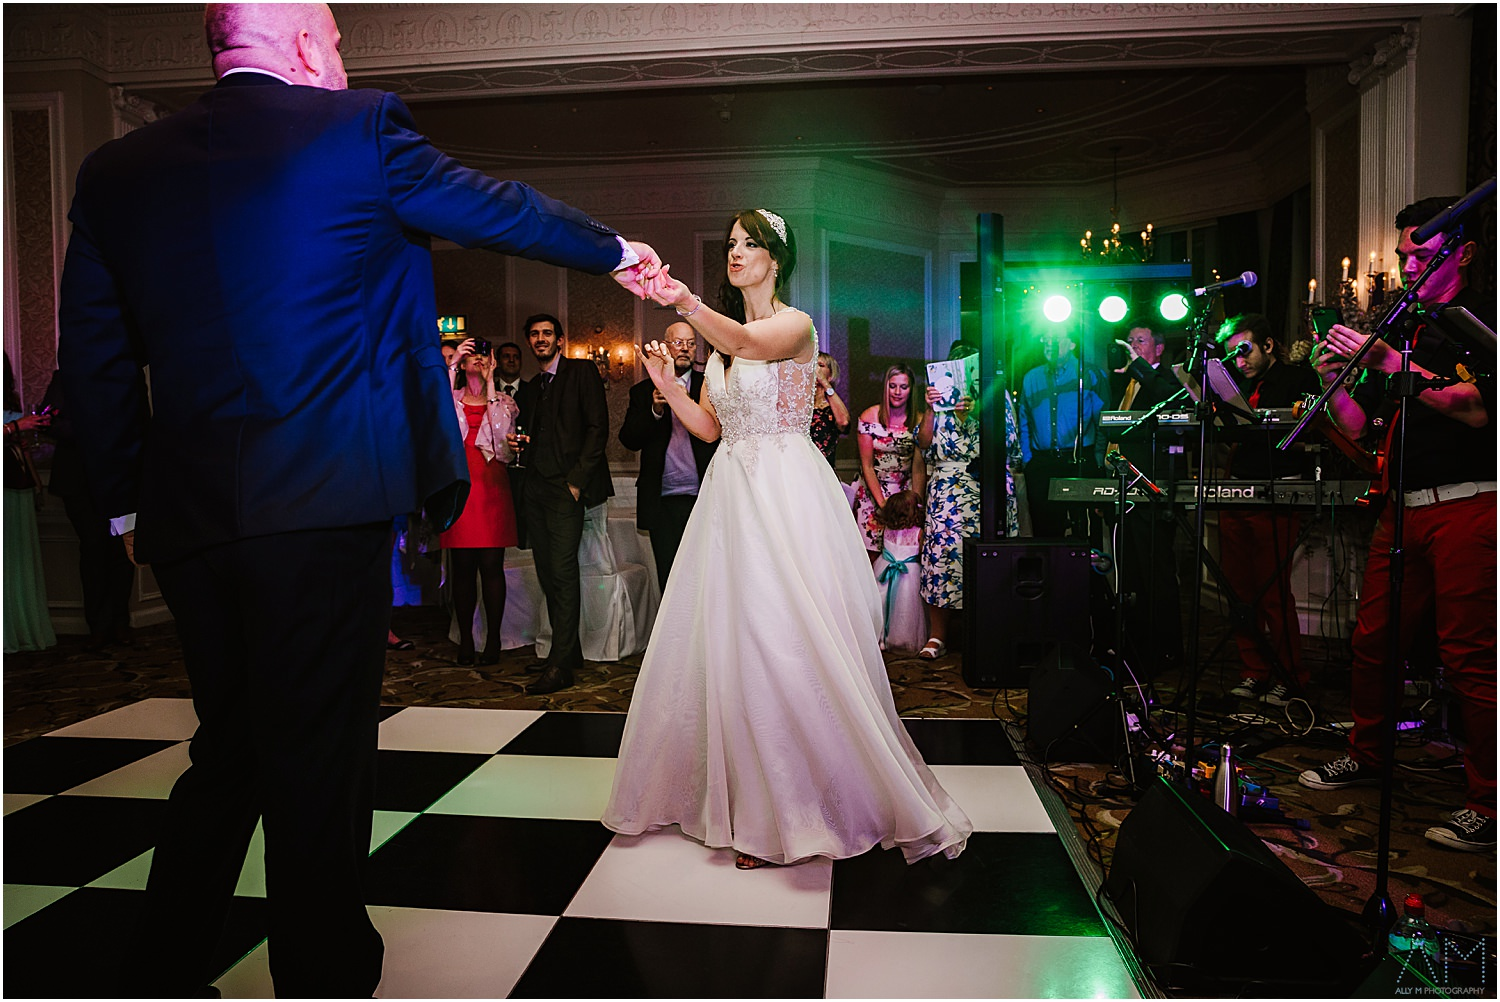 First dance at Midland hotel Manchester